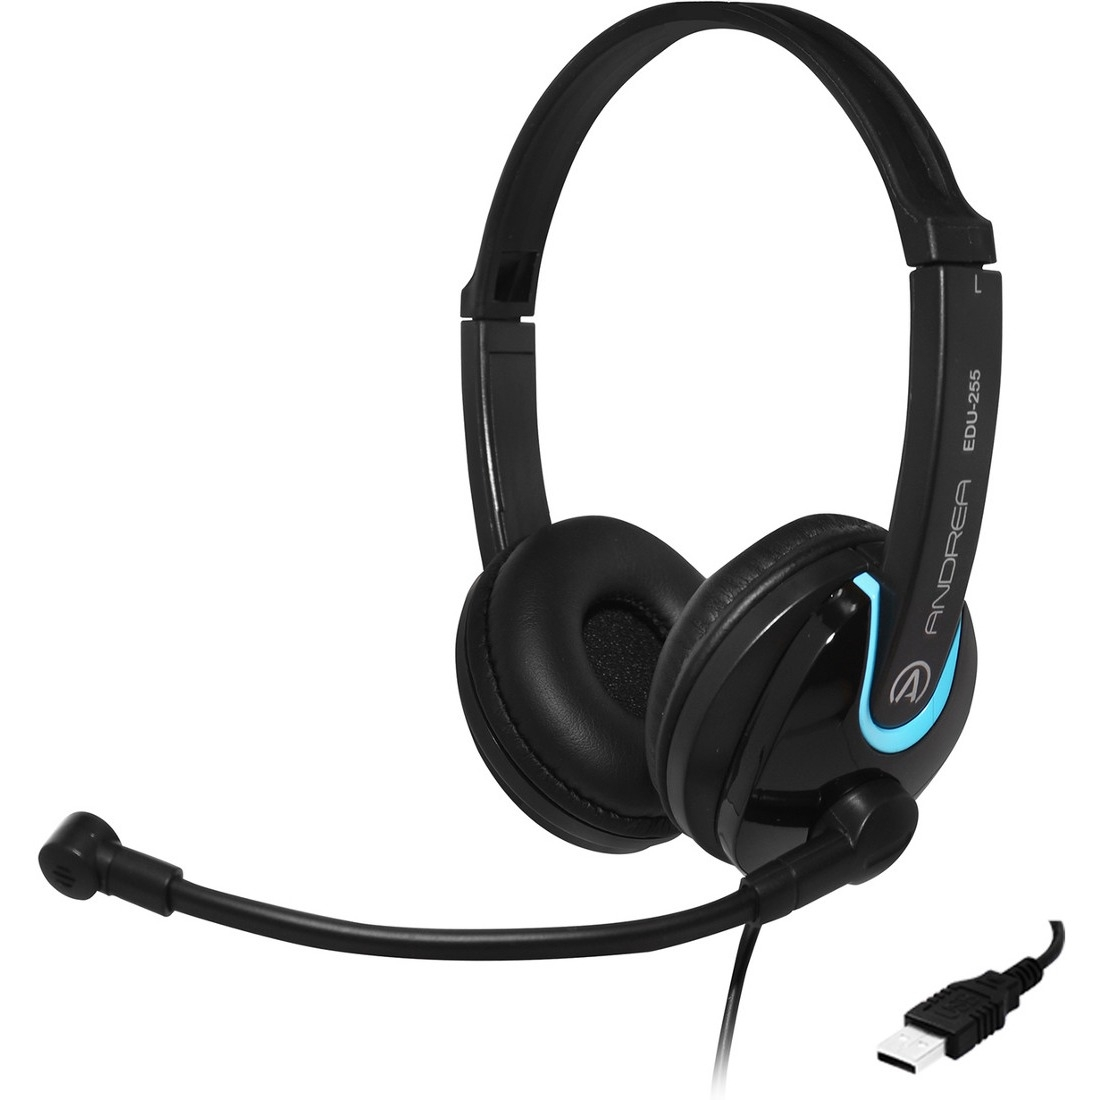 Andrea EDU-255 USB On-Ear Stereo Headset - Stereo - USB - Wired - 32 Ohm - 50 Hz - 20 kHz - Over-the-head - Binaural - Circumaural - 8 ft Cable